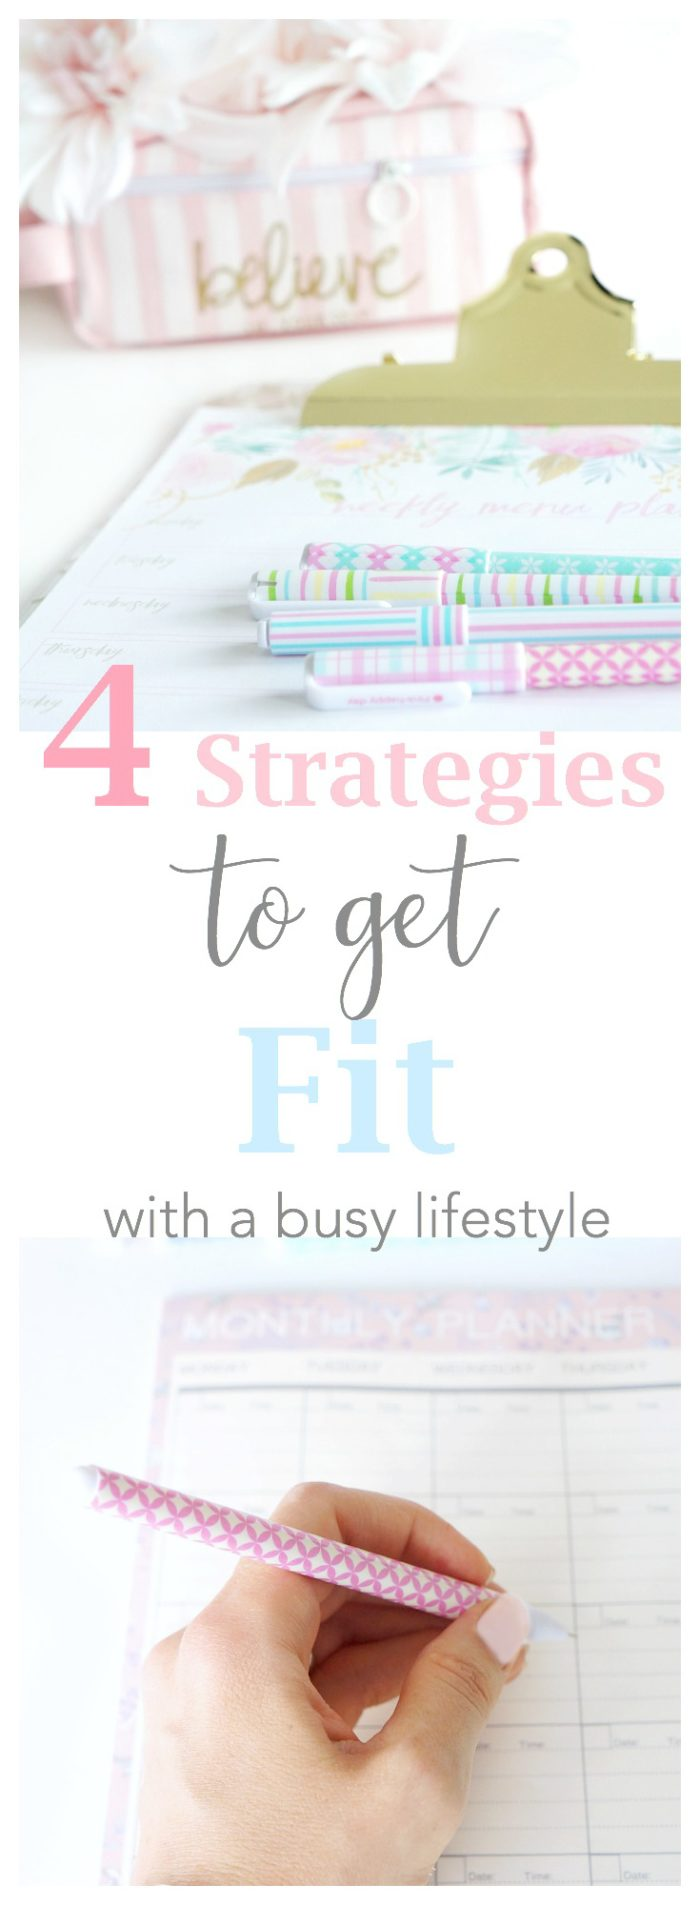 Organizational Strategies to Fit Healthy Living into A Busy Lifestyle